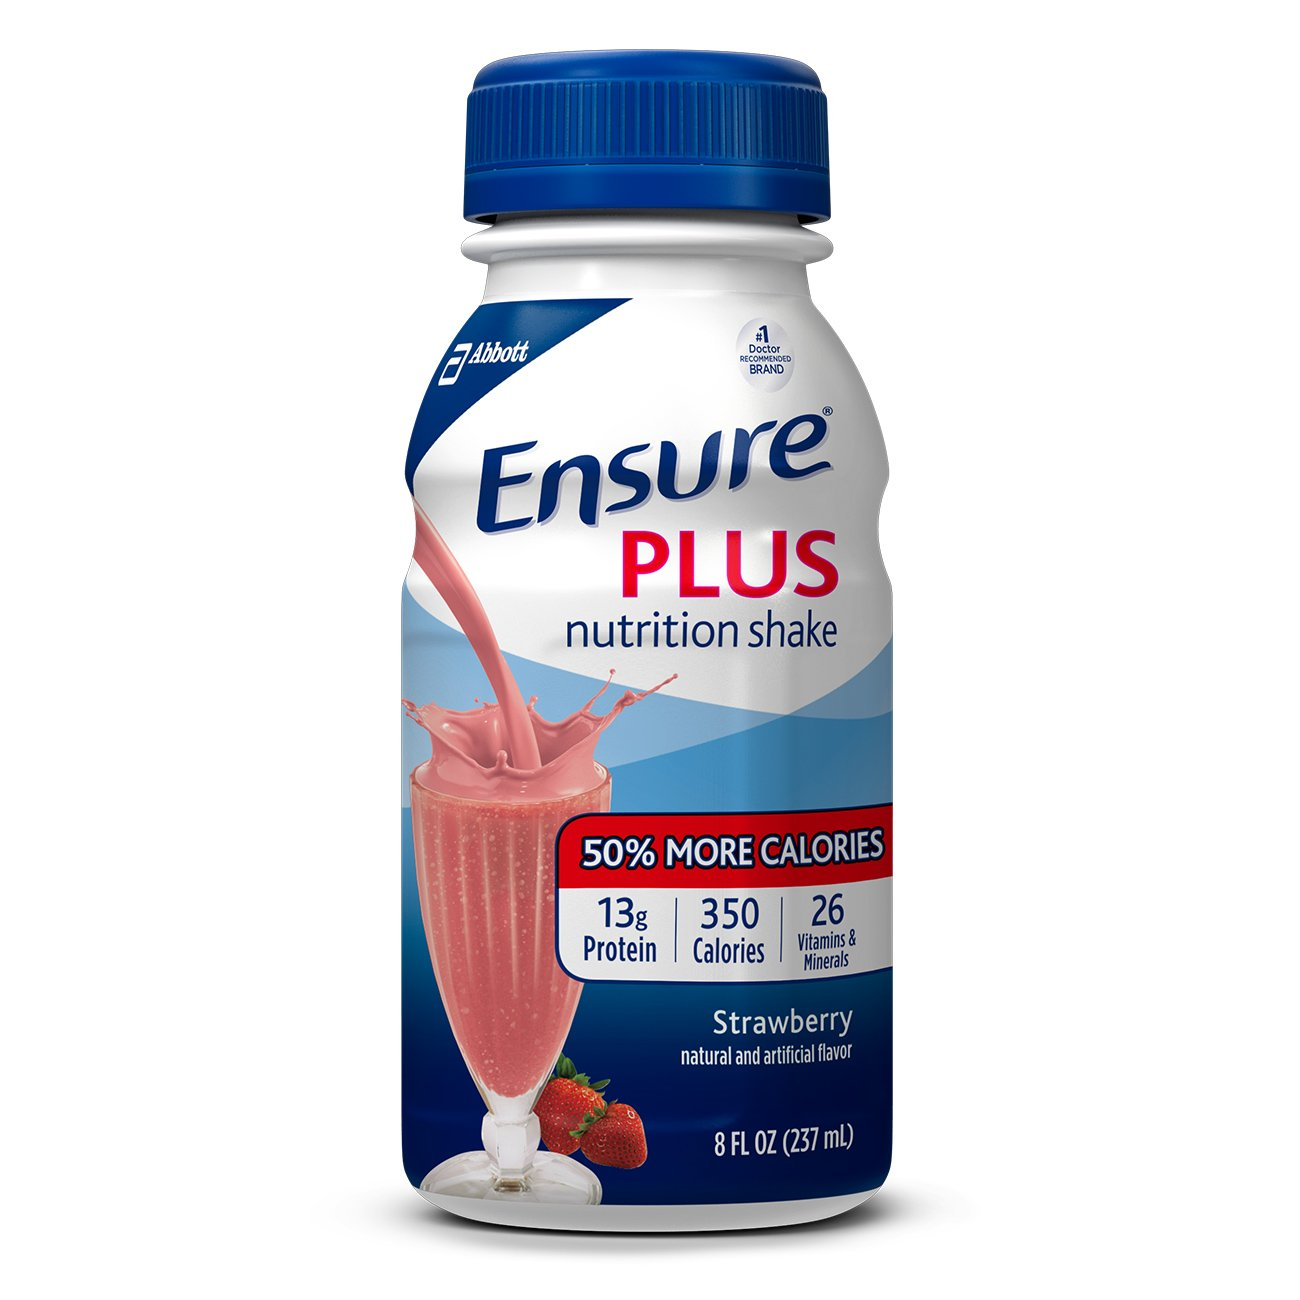 Ensure Plus Nutrition Shake with 13 grams of high-quality protein, Meal Replacement Shakes, Strawberry, 8 fl oz, 24 count by Ensure Plus